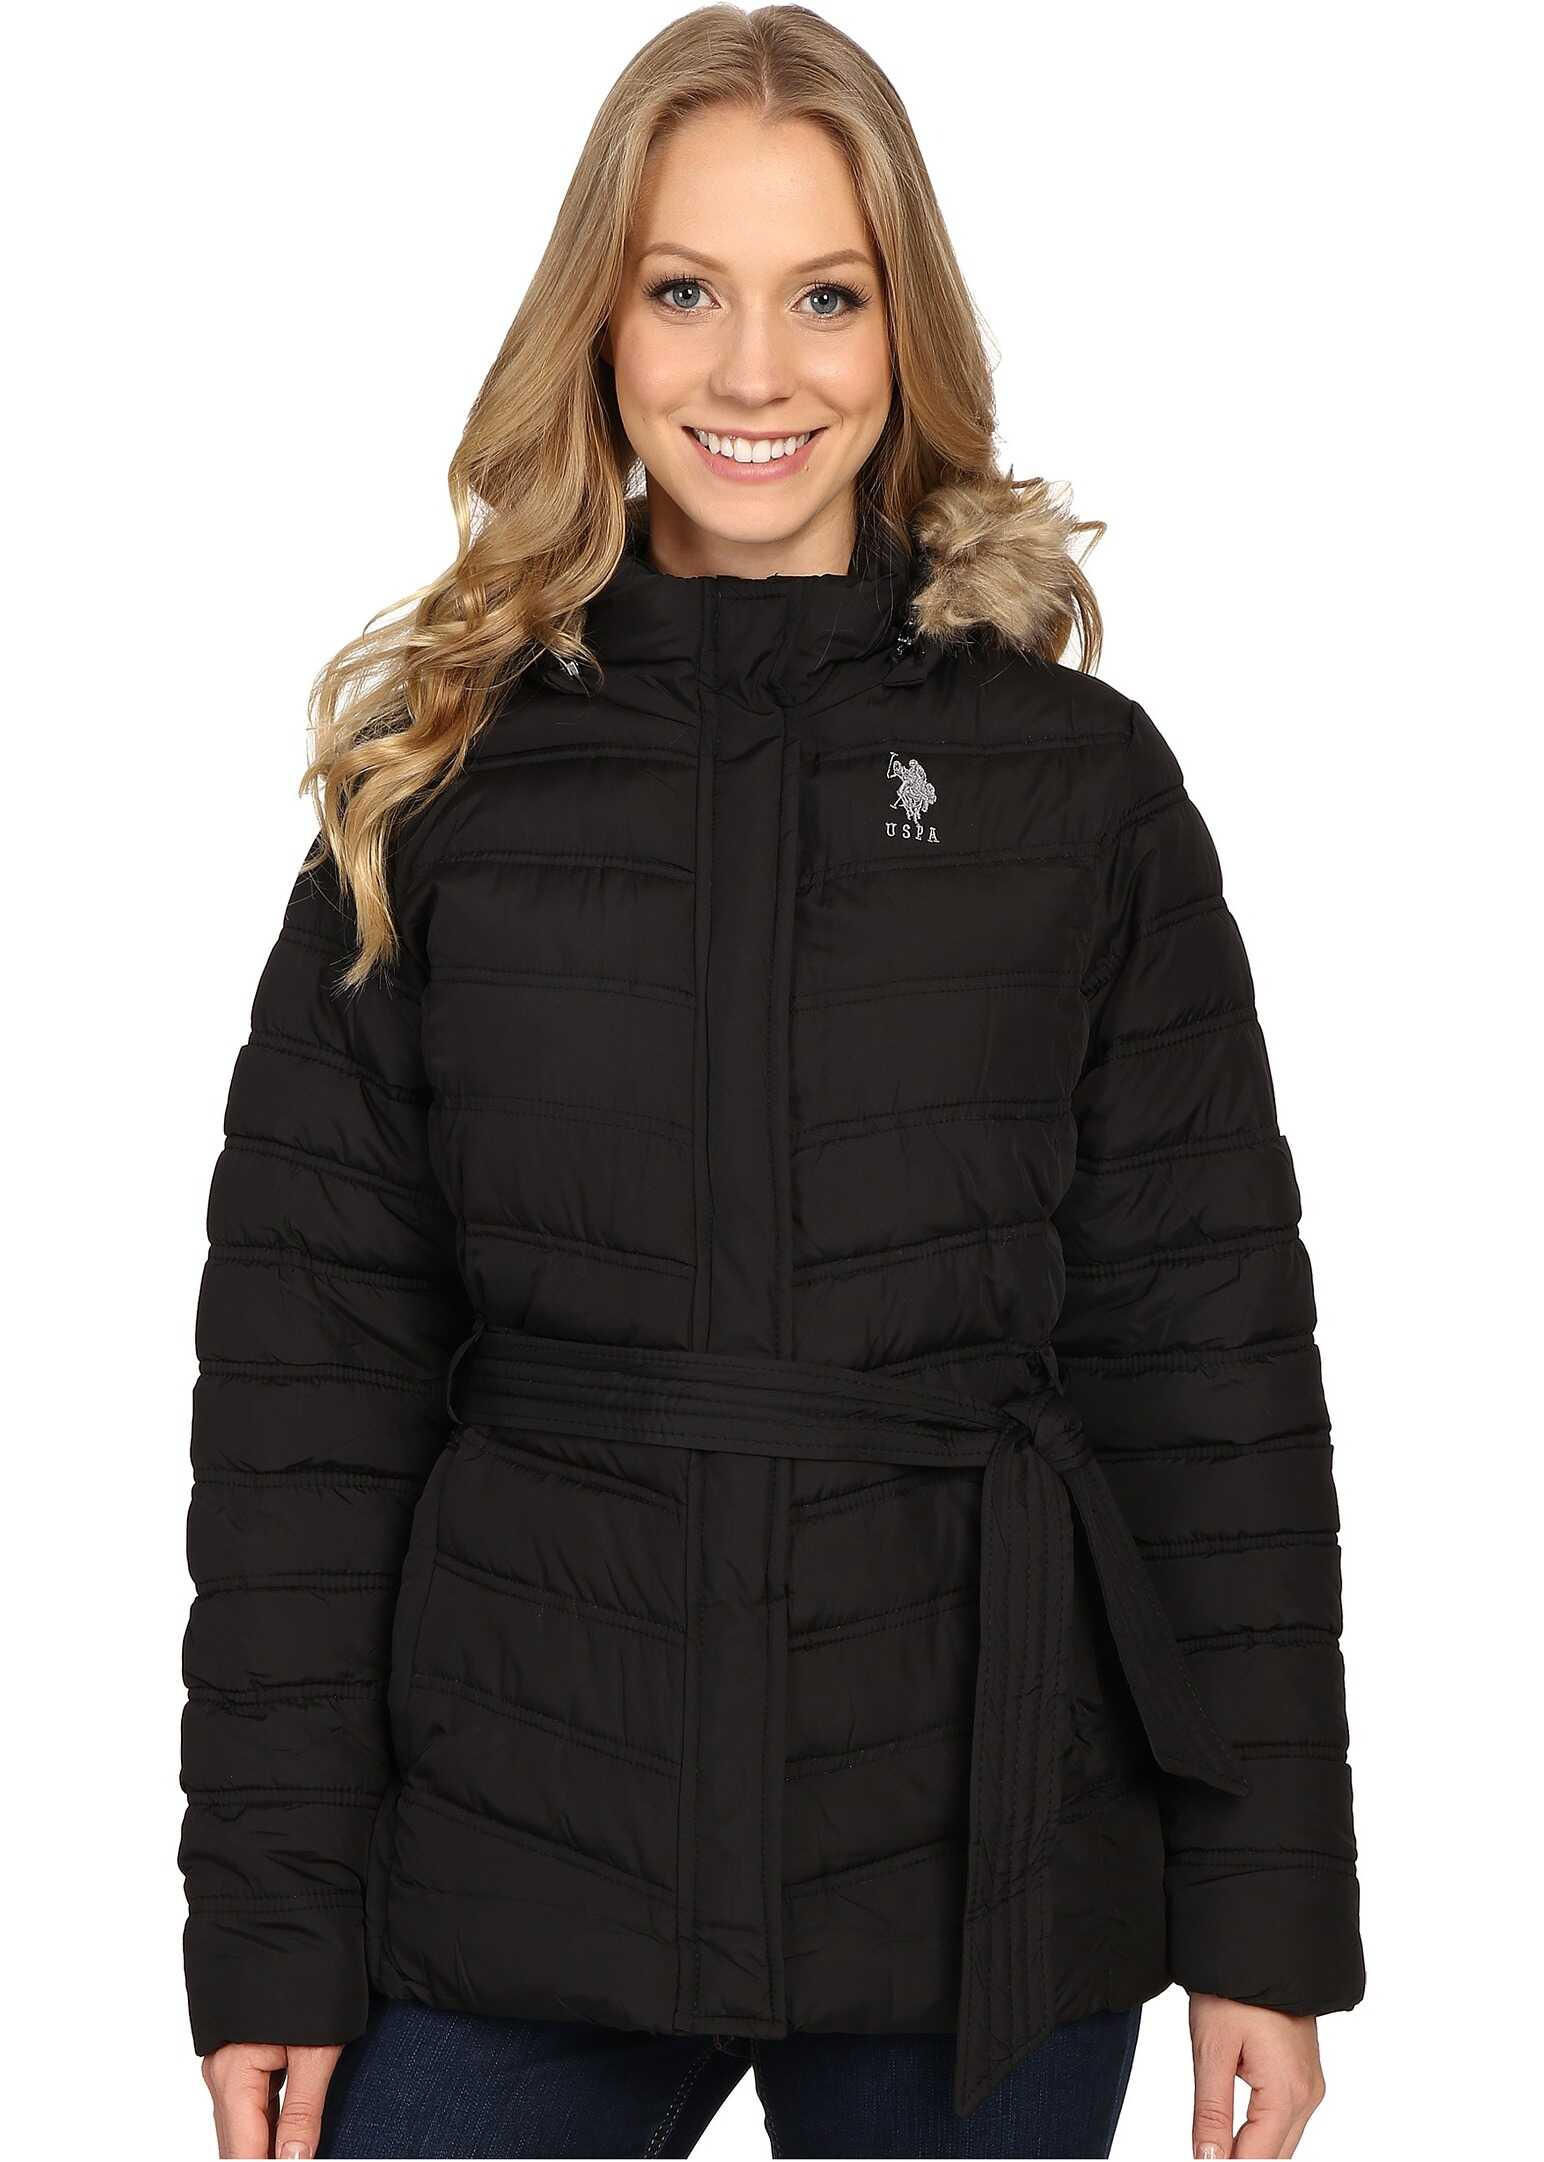 U.S. POLO ASSN. Belted Puffer Jacket with Faux Fur Hood Trim Black